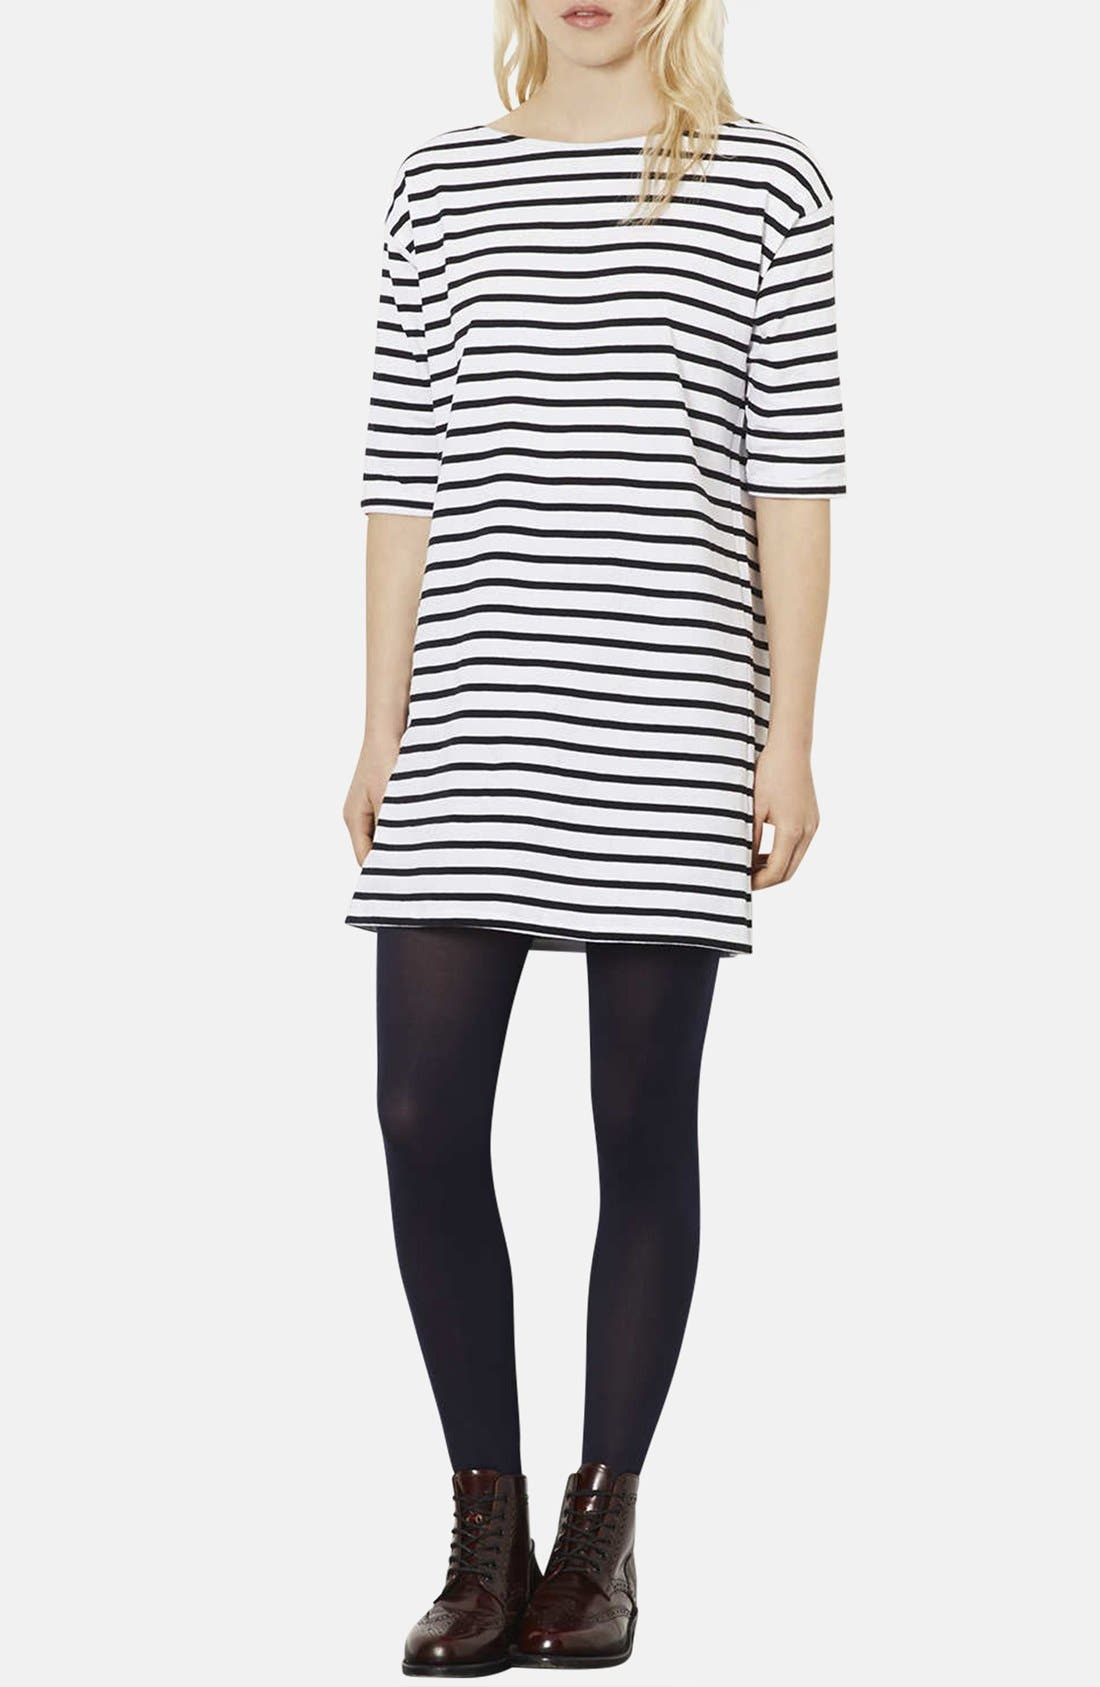 Alternate Image 1 Selected - Topshop Stripe Cotton Tunic Dress